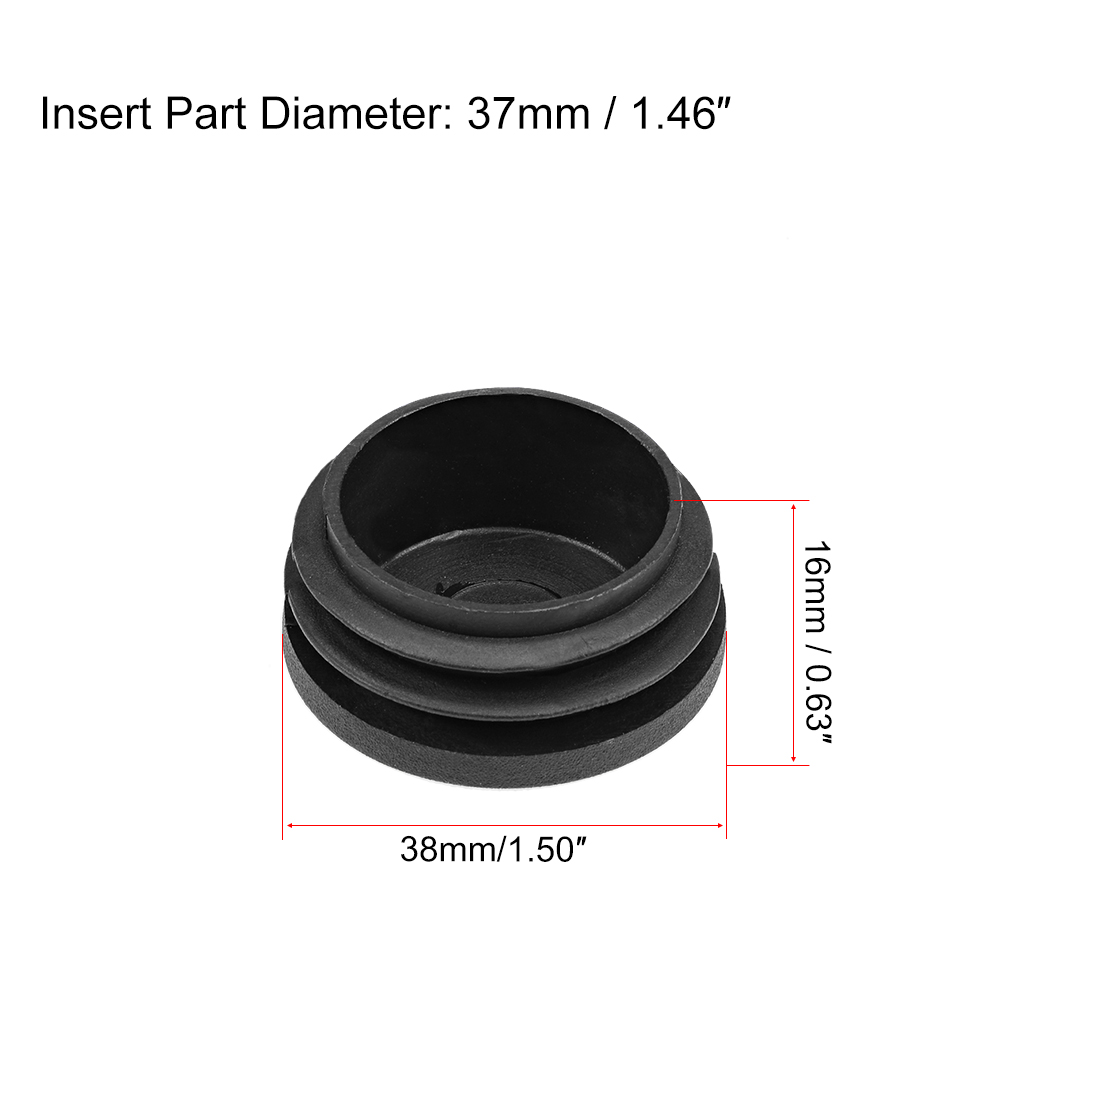 Plastic Plug End Caps 38mm x 37mm Round Furniture Table Chair Legs 25Pcs - image 1 of 5